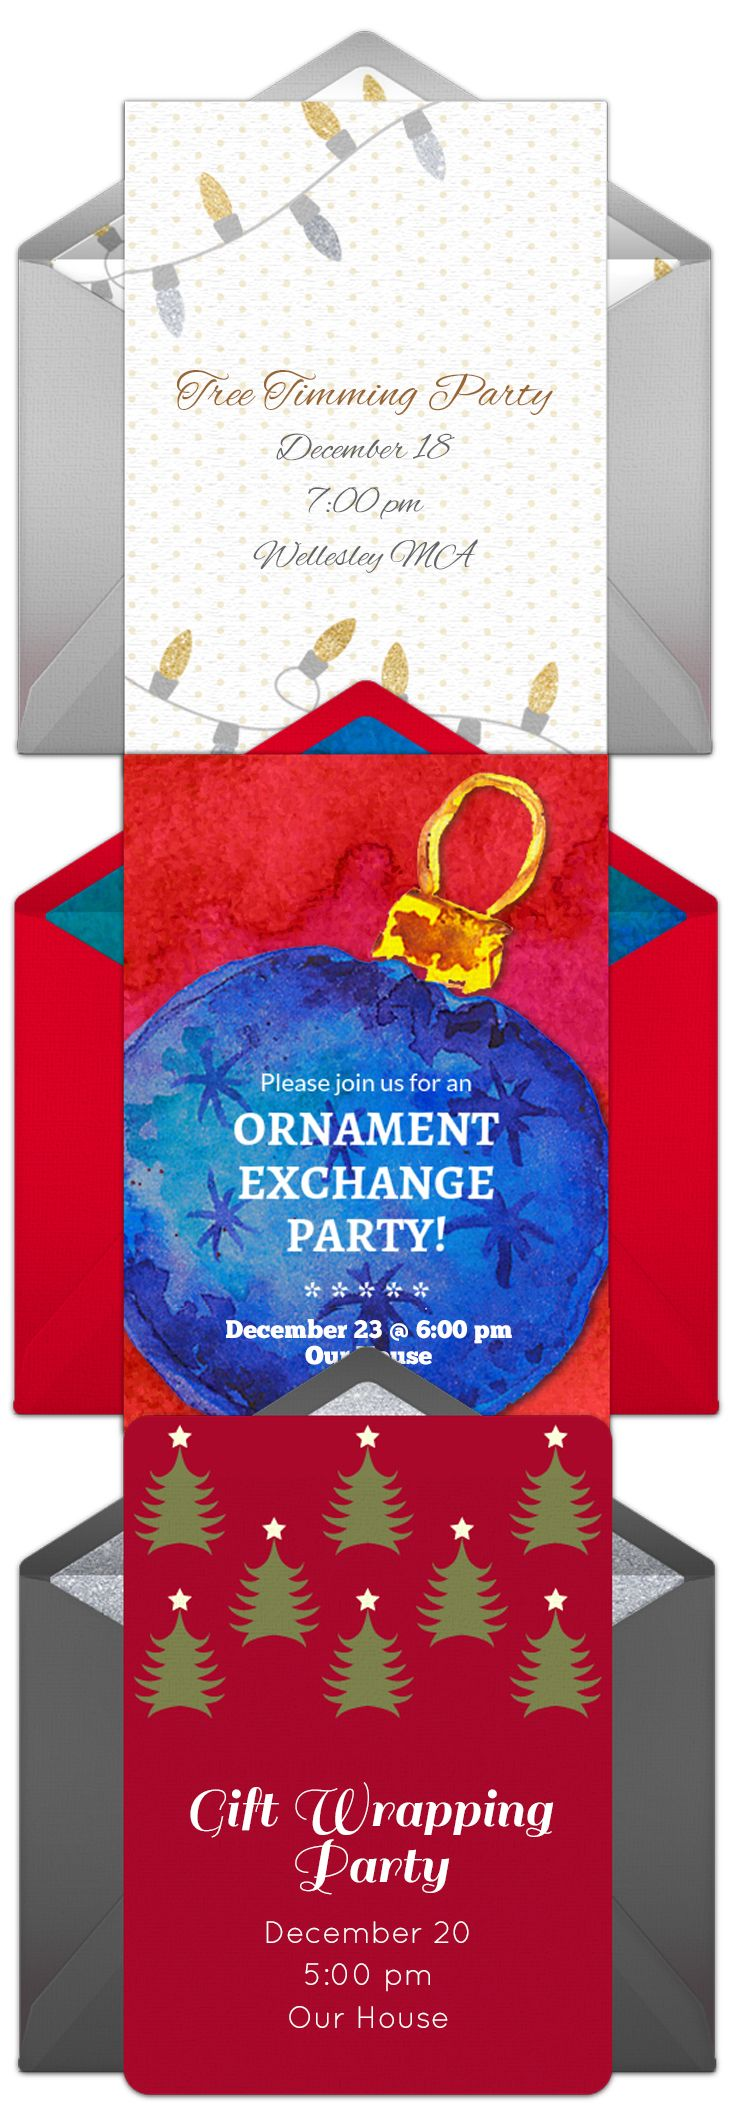 Online Invitations from | Holiday party invitations, Party ...